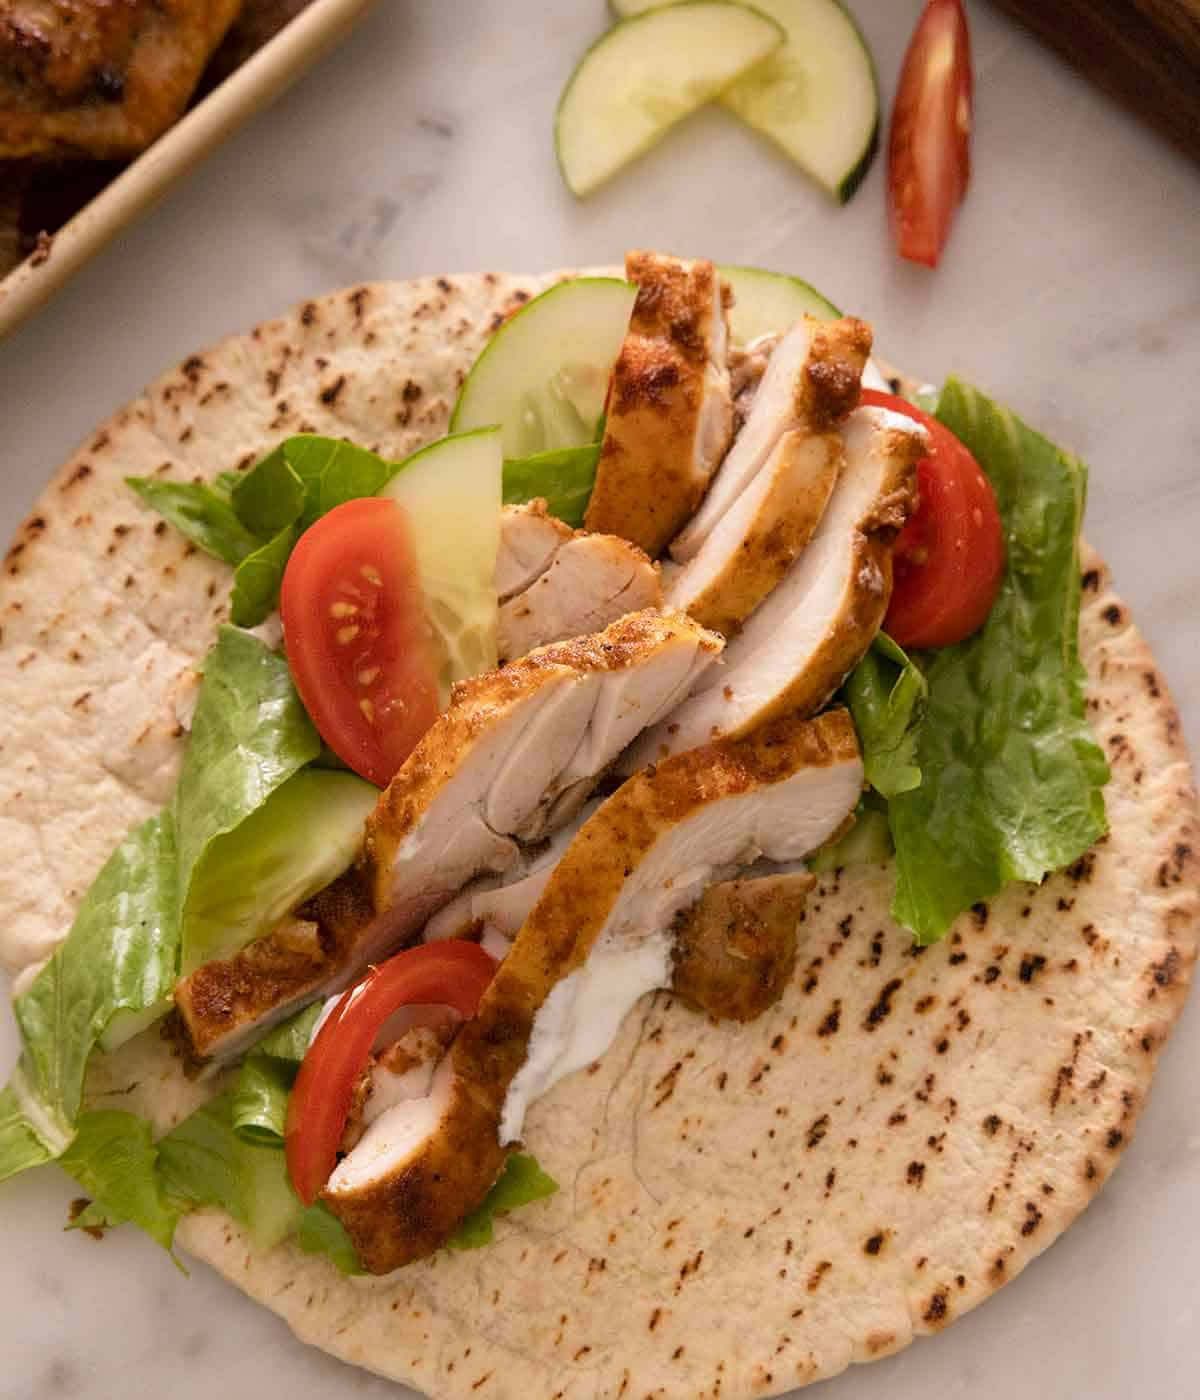 An opened pita with chicken shawarma with lettuce, tomatoes, and cucumbers.